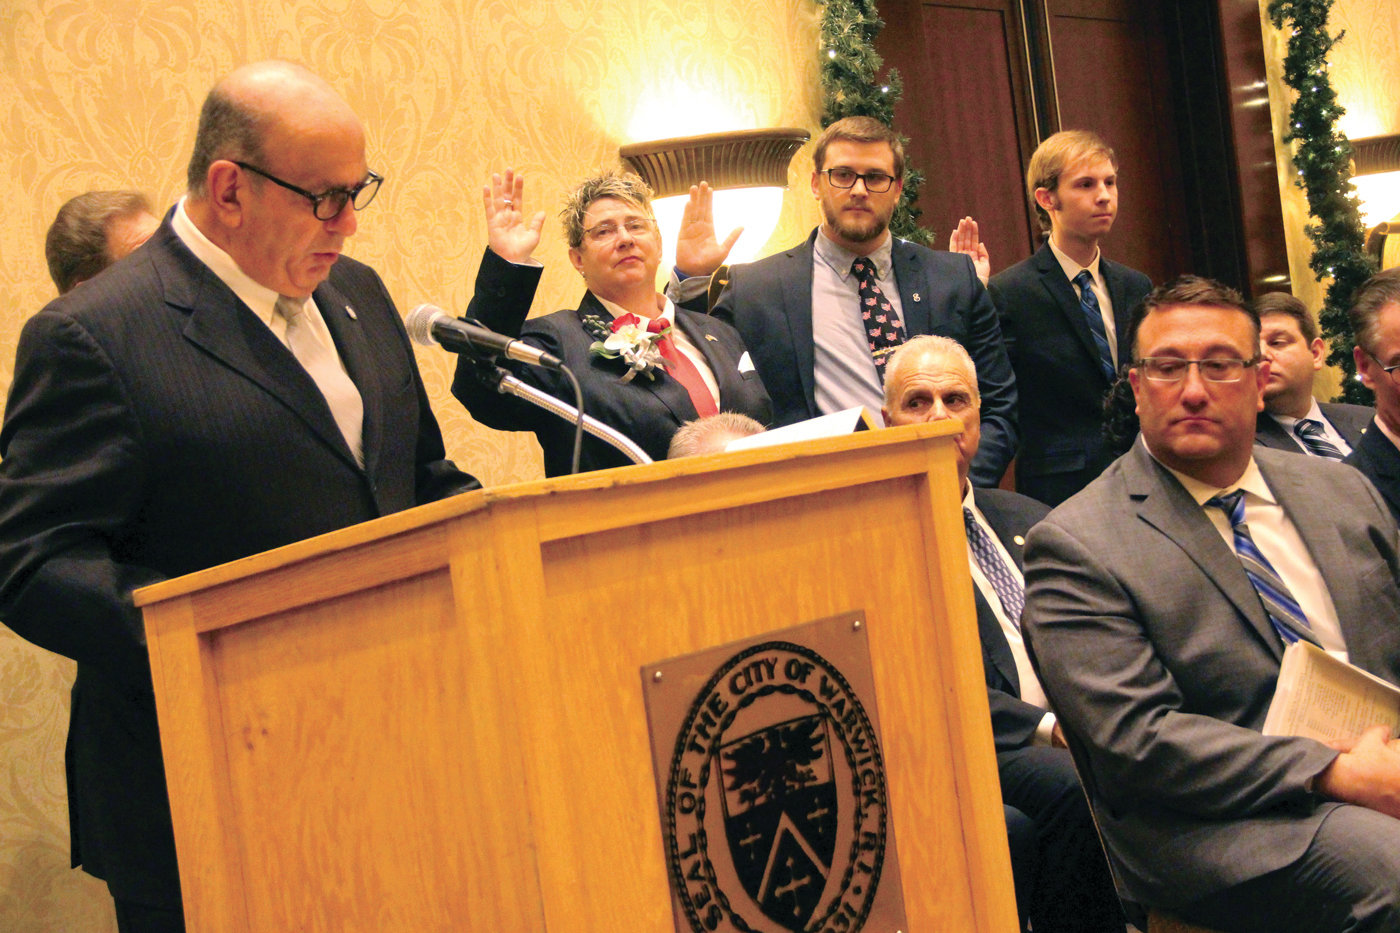 FIRST ORDER AS MAYOR: After taking office, Mayor Solomon administered the oath of office to the City Council followed by the three new members of the School Committee as seen here (from left) Judith Cobden, Kyle Adams and Nathaniel Cornell.